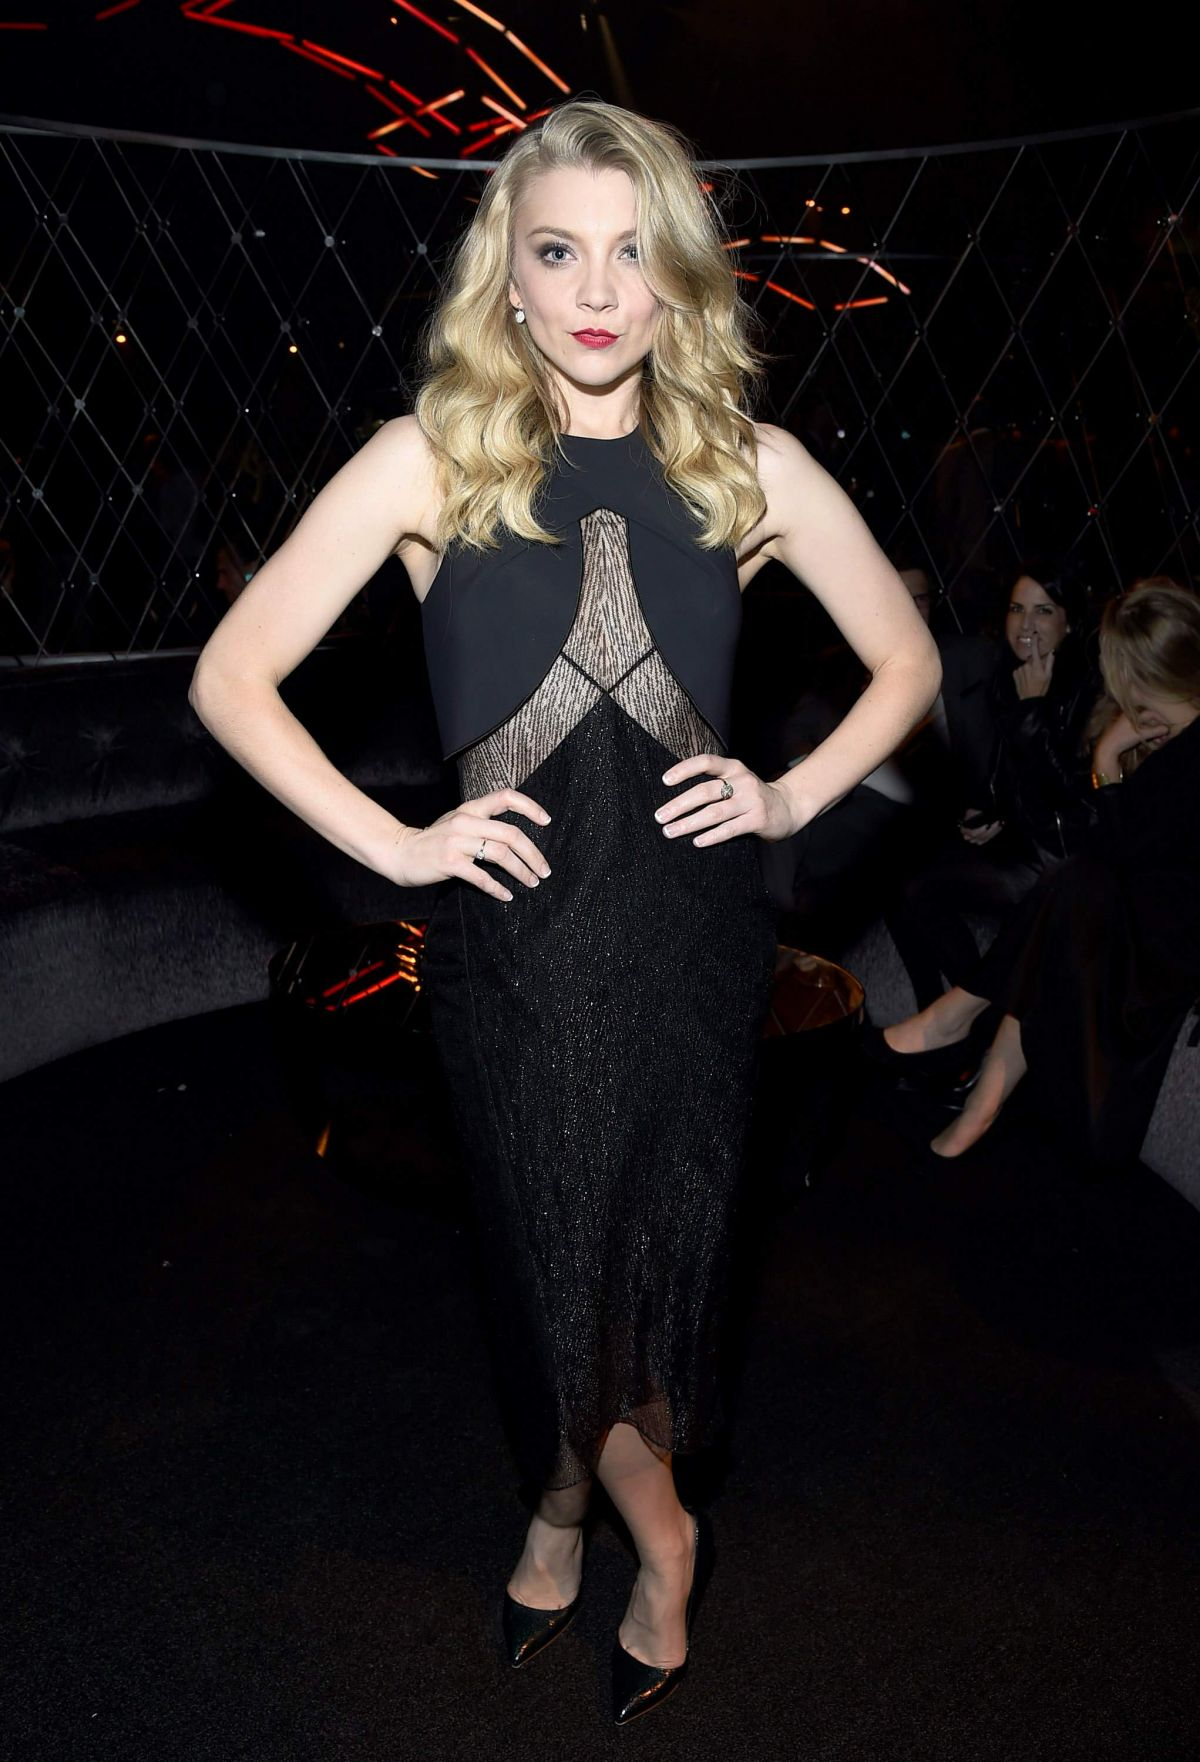 Natalie Dormer At After Party of Premiere The Hunger Games ...